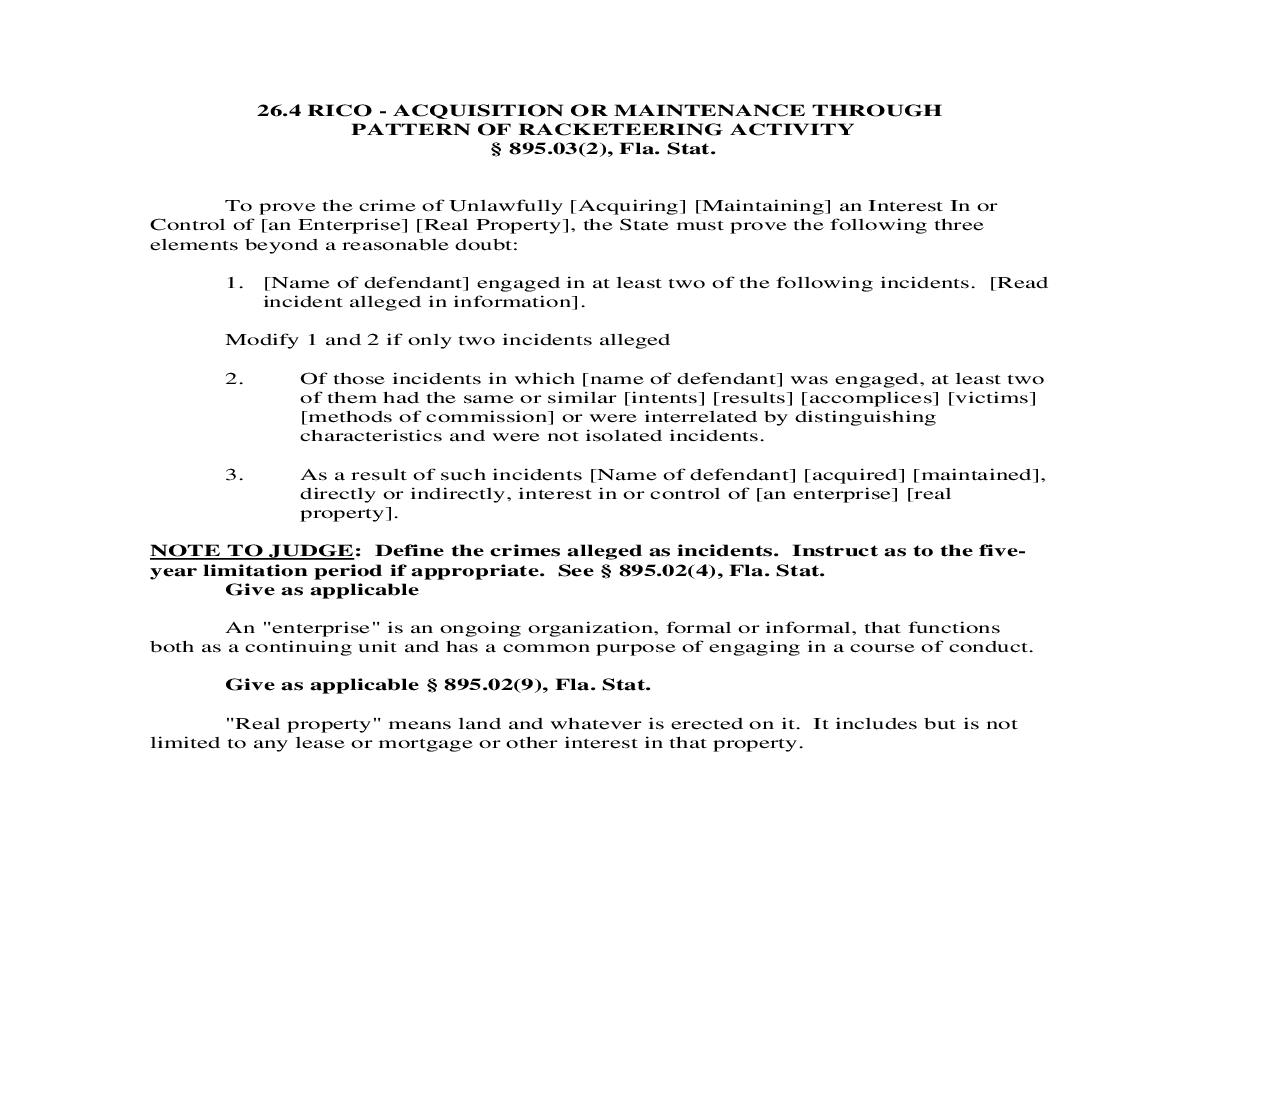 26.4. RICO - Acquisition Or Maintenance Through Pattern Of Racketeering Activity   Pdf Doc Docx   Florida_JI